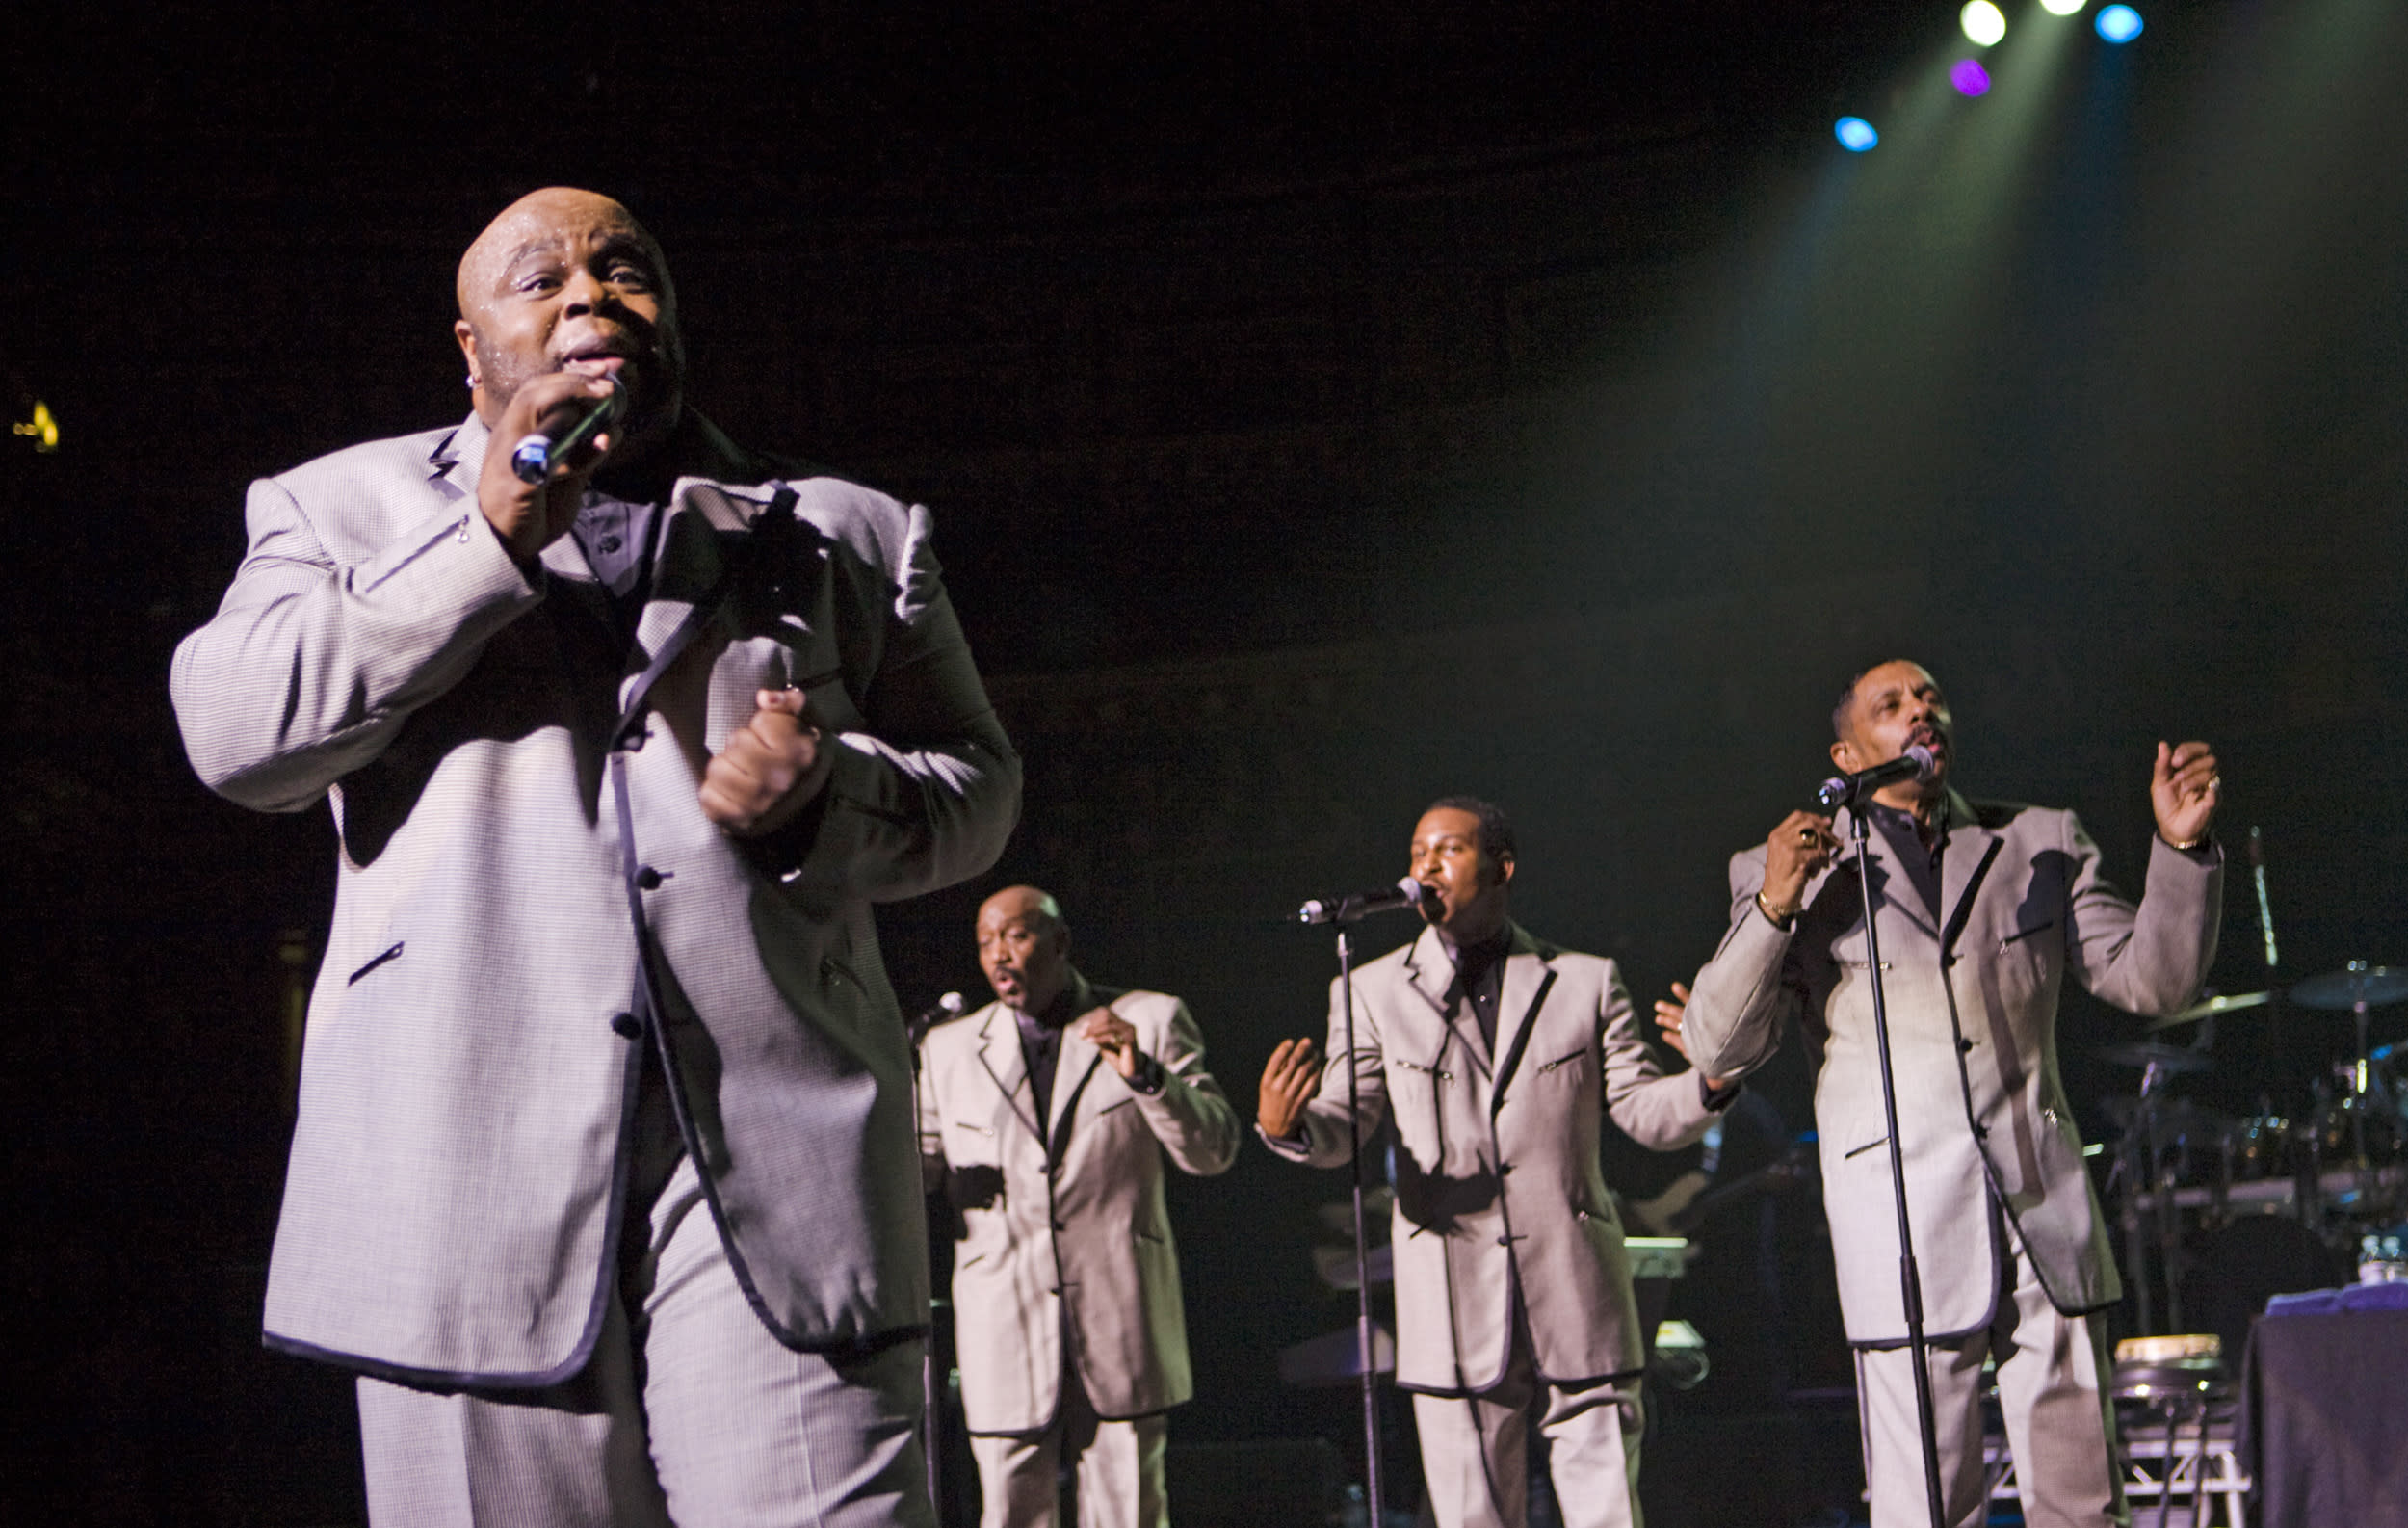 Former Temptations lead singer Bruce Williamson dies at age 49